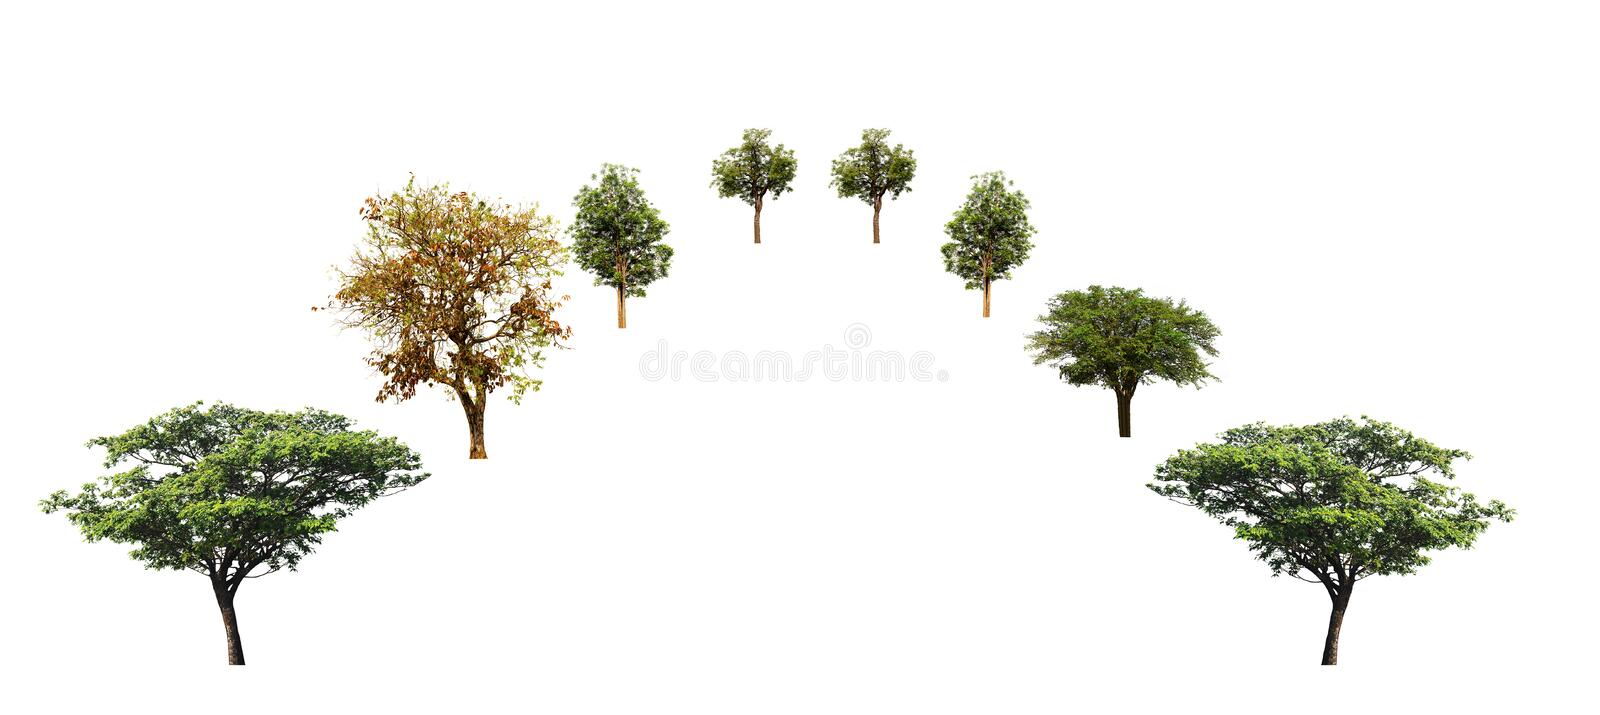 Set of trees, east Indian walnut tree, neem tree, Indian jujube tree isolated on white background. Set of trees east indian walnut neem jujube isolated white royalty free stock image